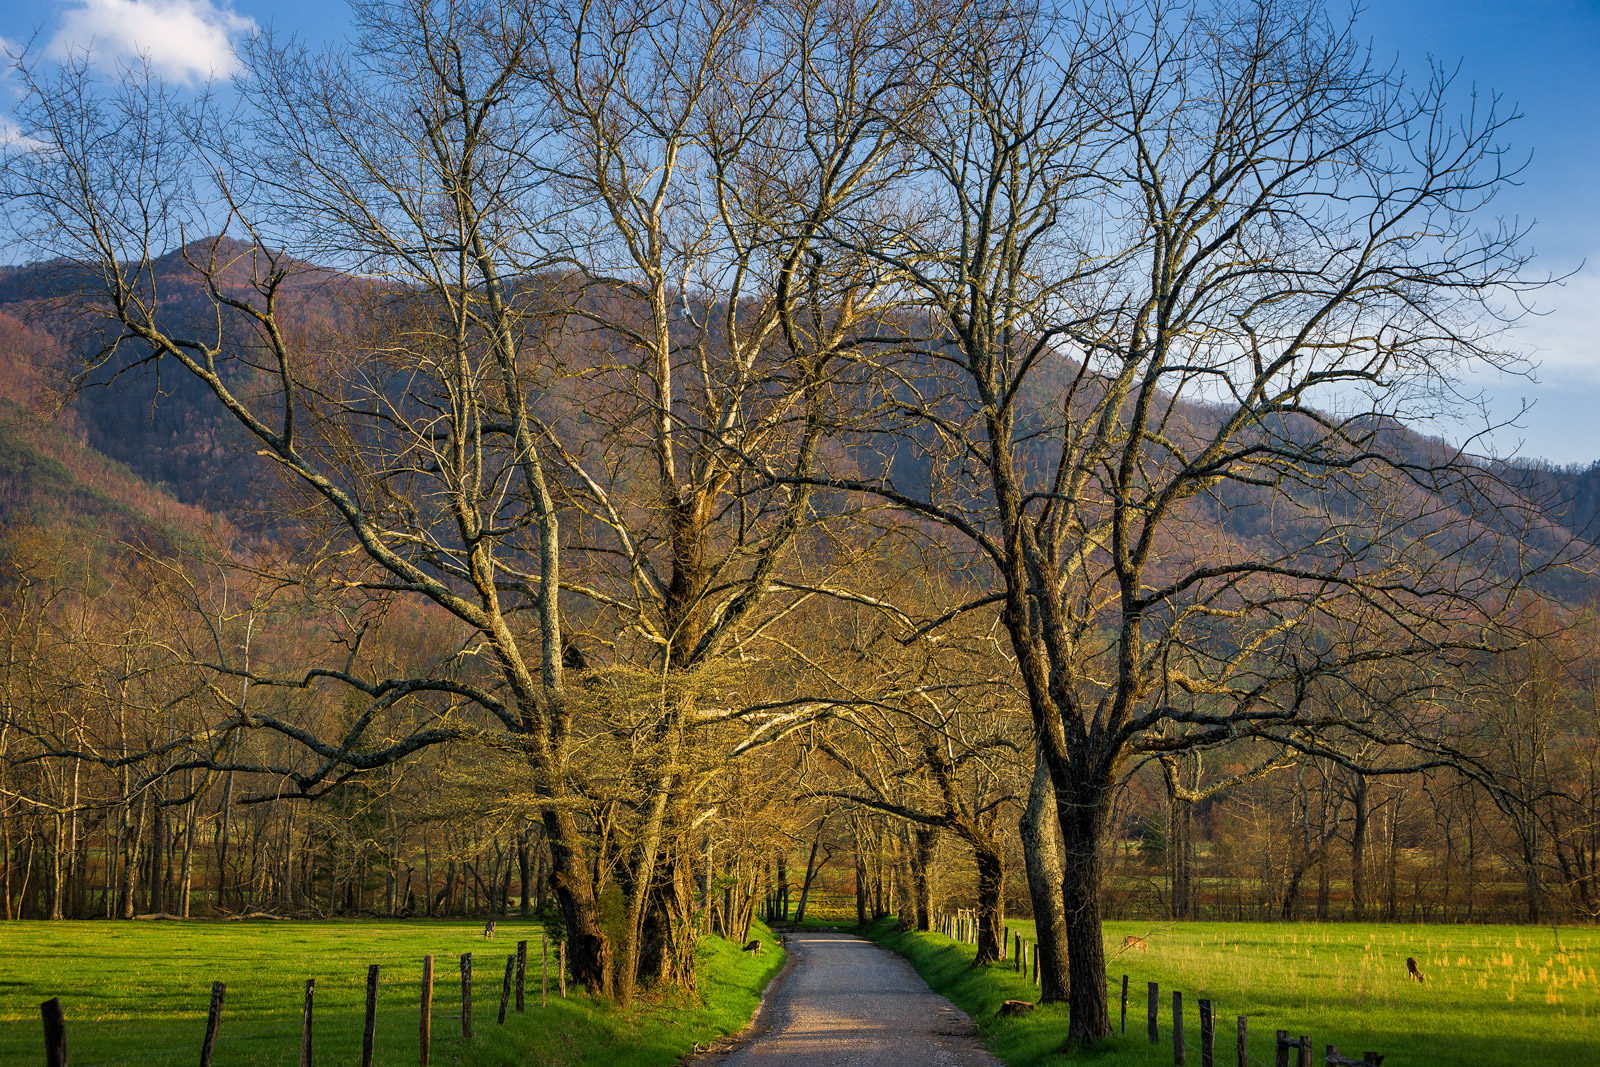 Tennessee, Smoky Mountains, Cades Cove, Sparks Lane, limited edition, photograph, fine art, landscape, photo